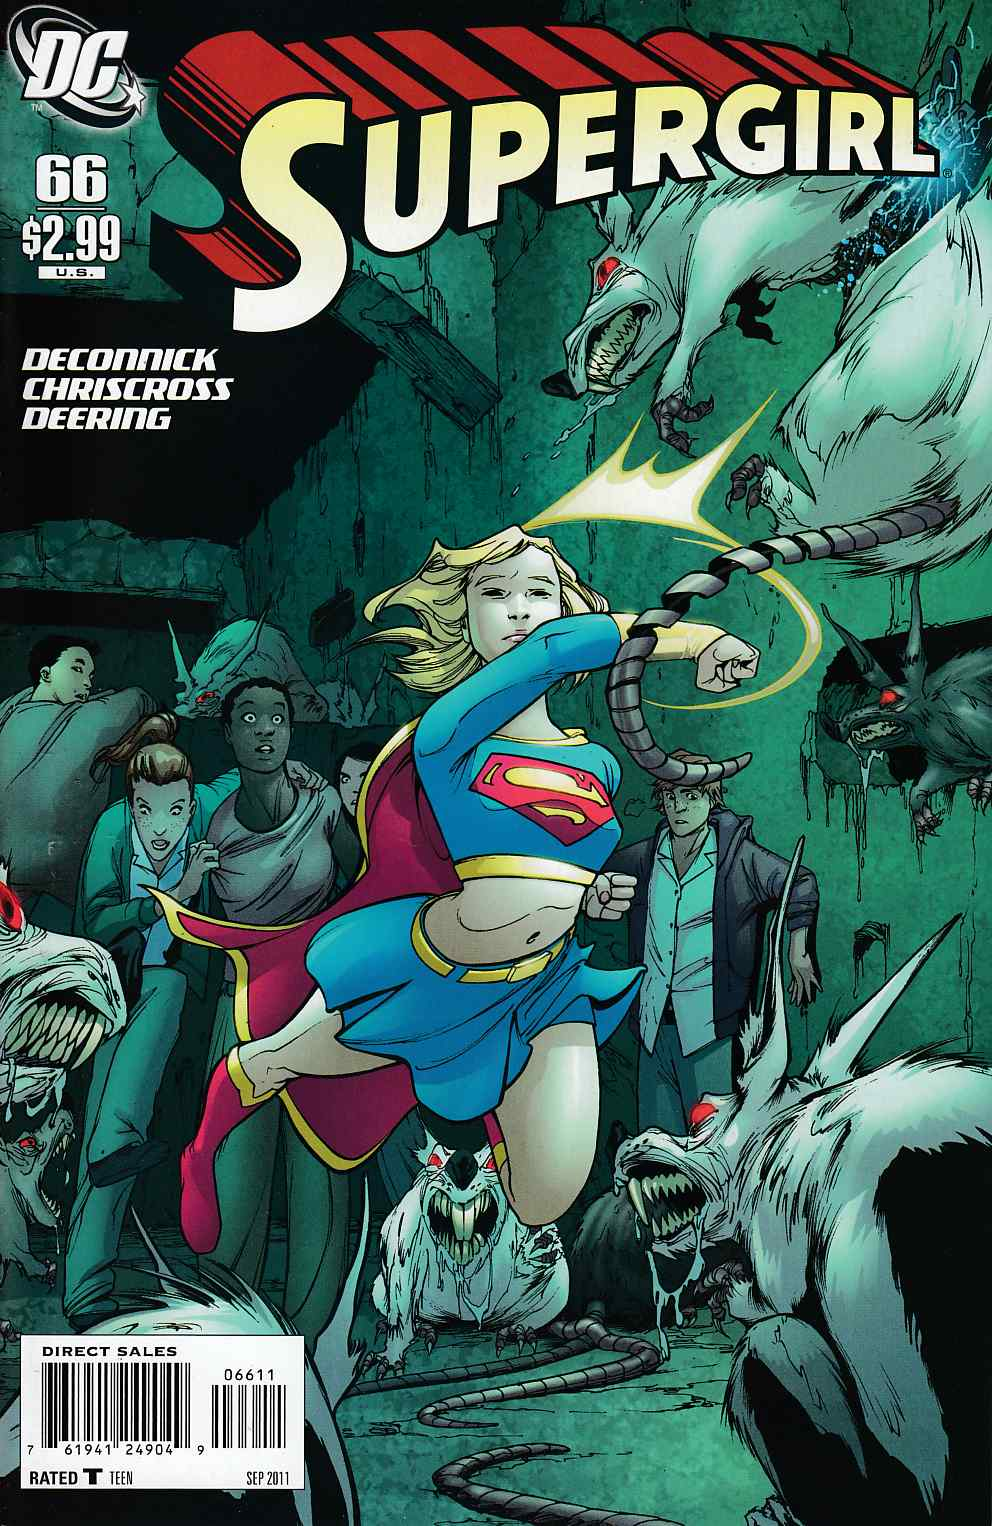 Supergirl #66 Near Mint (9.4) [DC Comic] THUMBNAIL